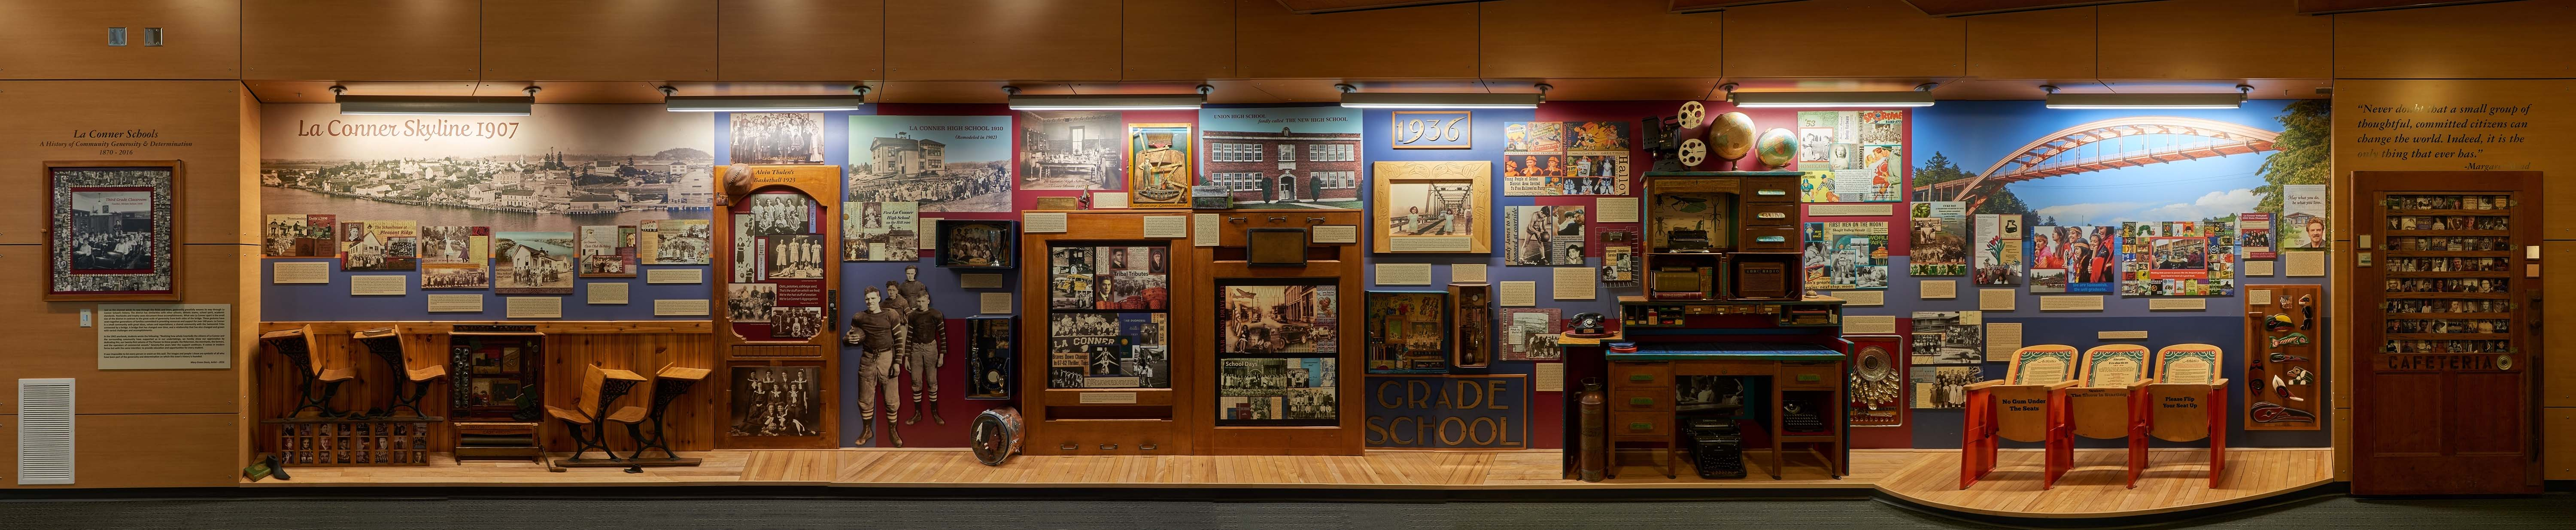 A panorama photo of the display case showing the school's history.